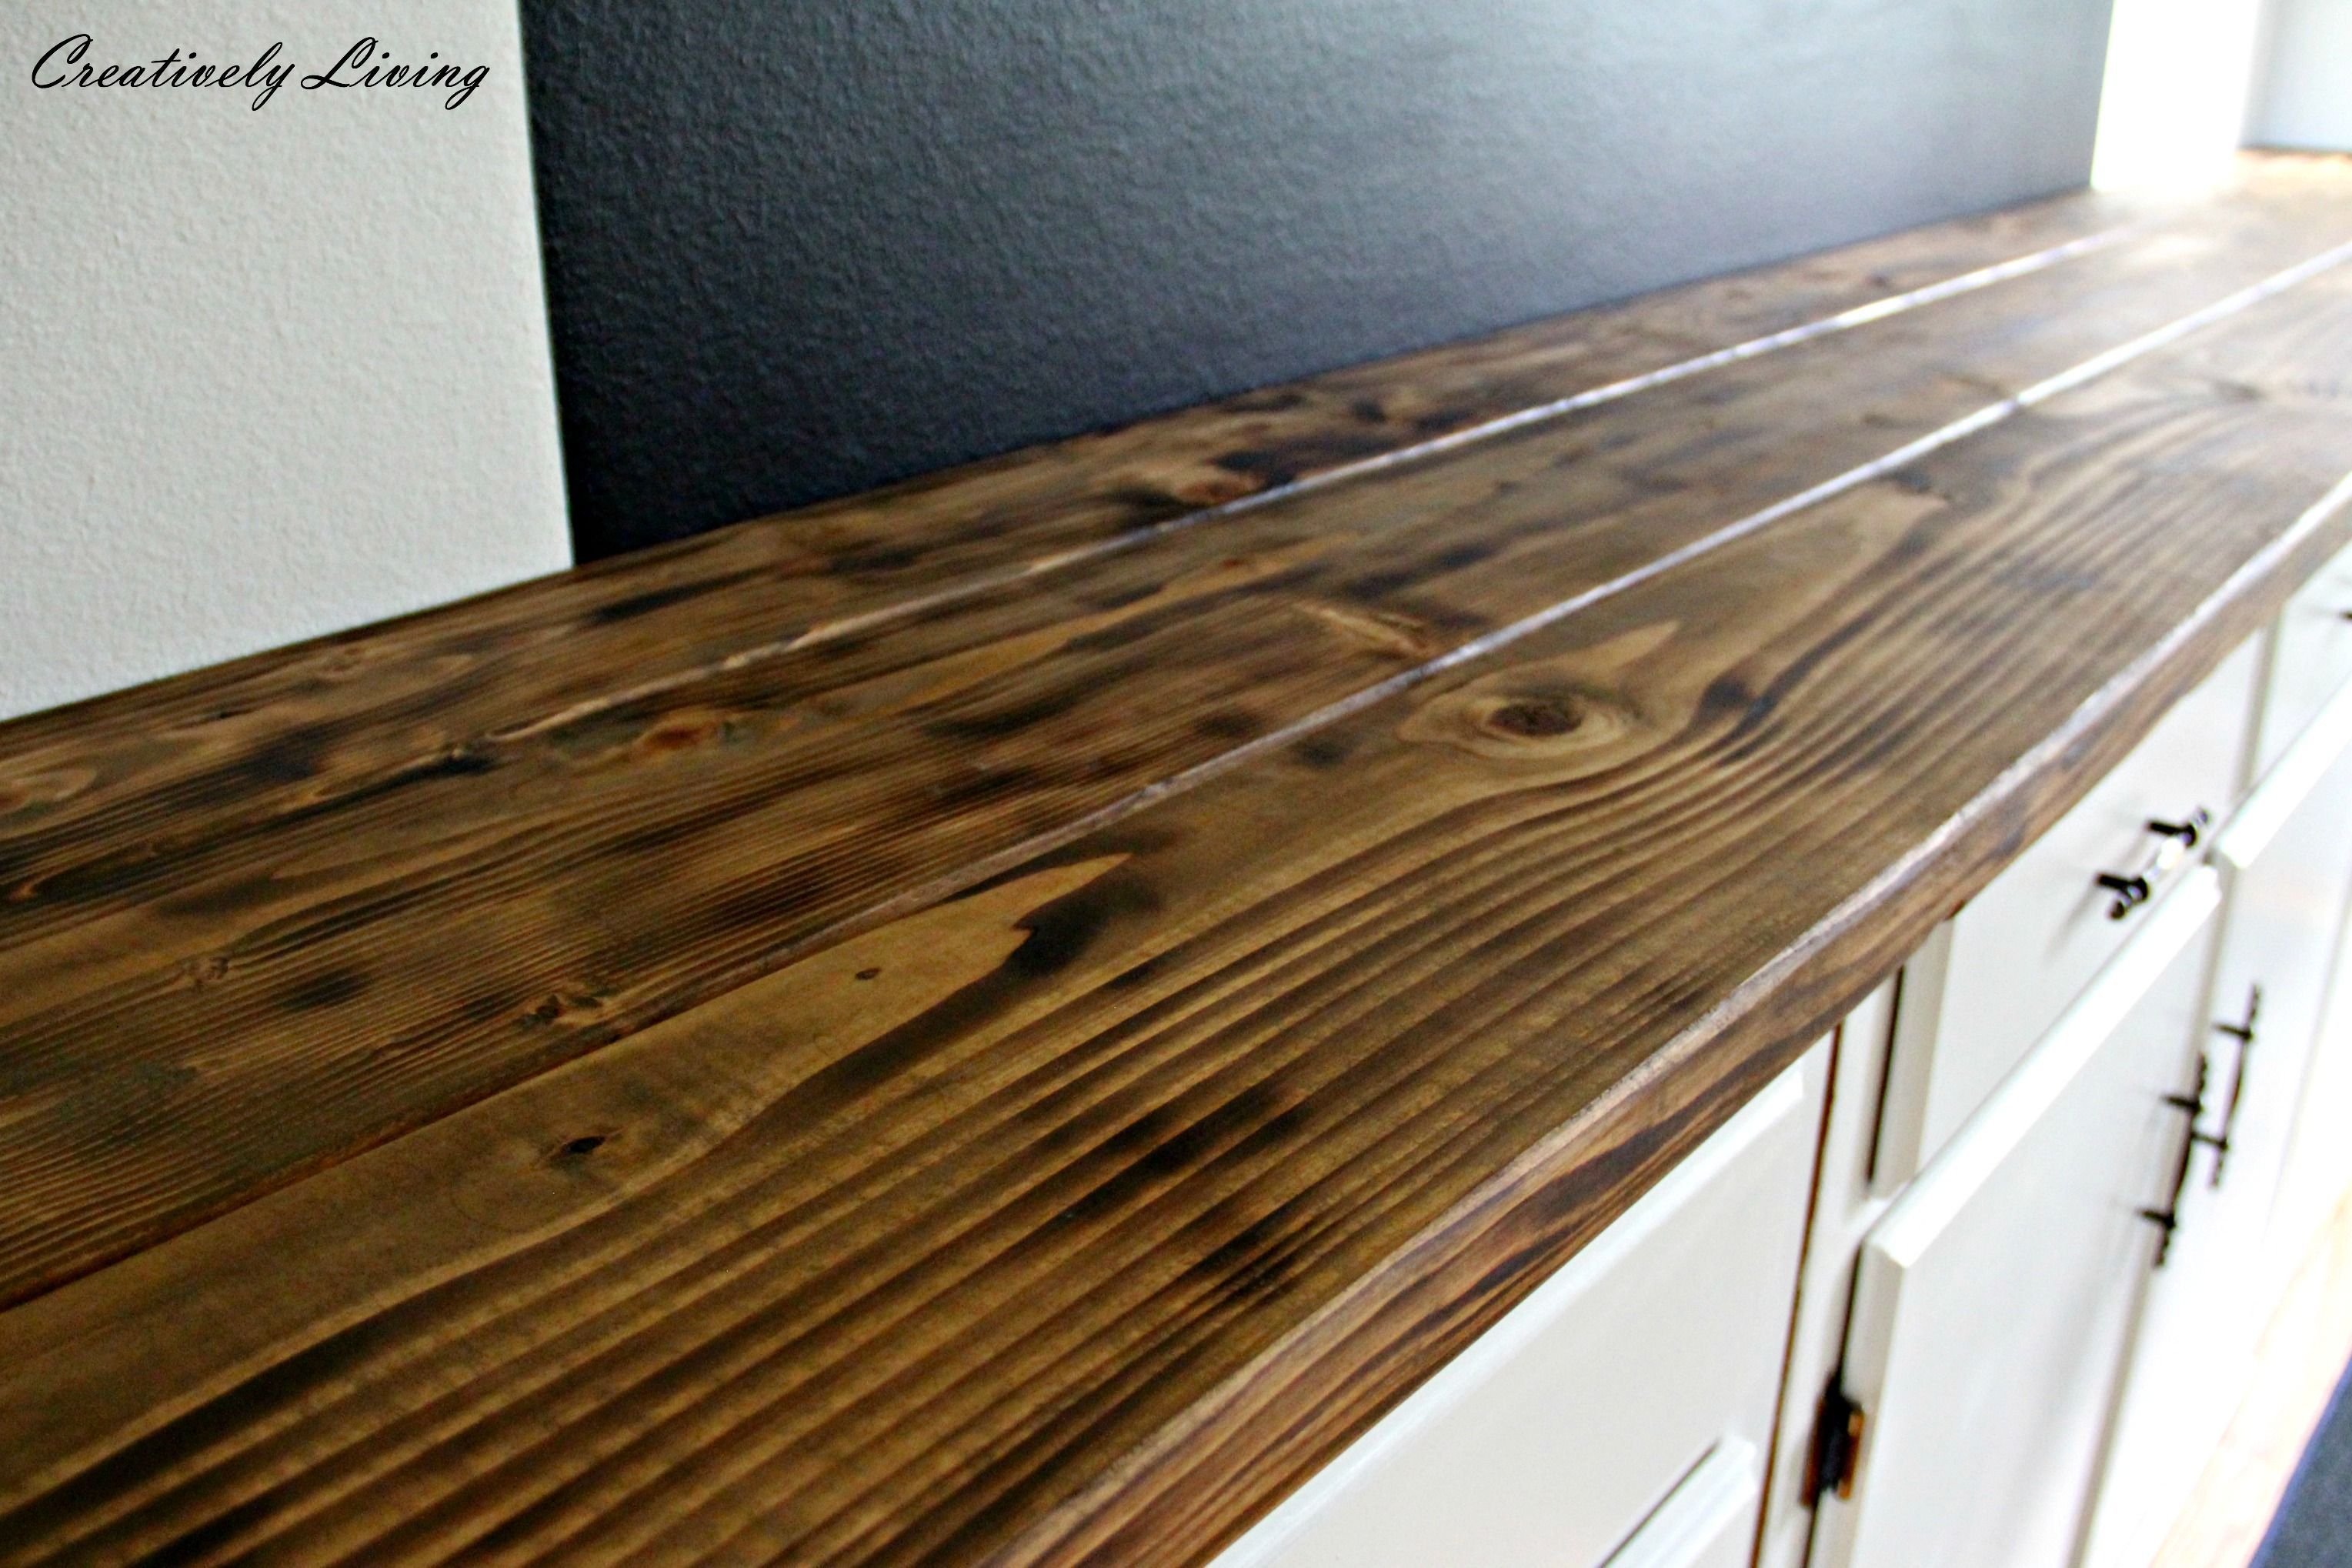 Kitchen Tops Wood Slate Backsplash Torched Diy Rustic Counter Top For Under 50 By Creatively Beautiful Built In Coffee Bar Makeover Living